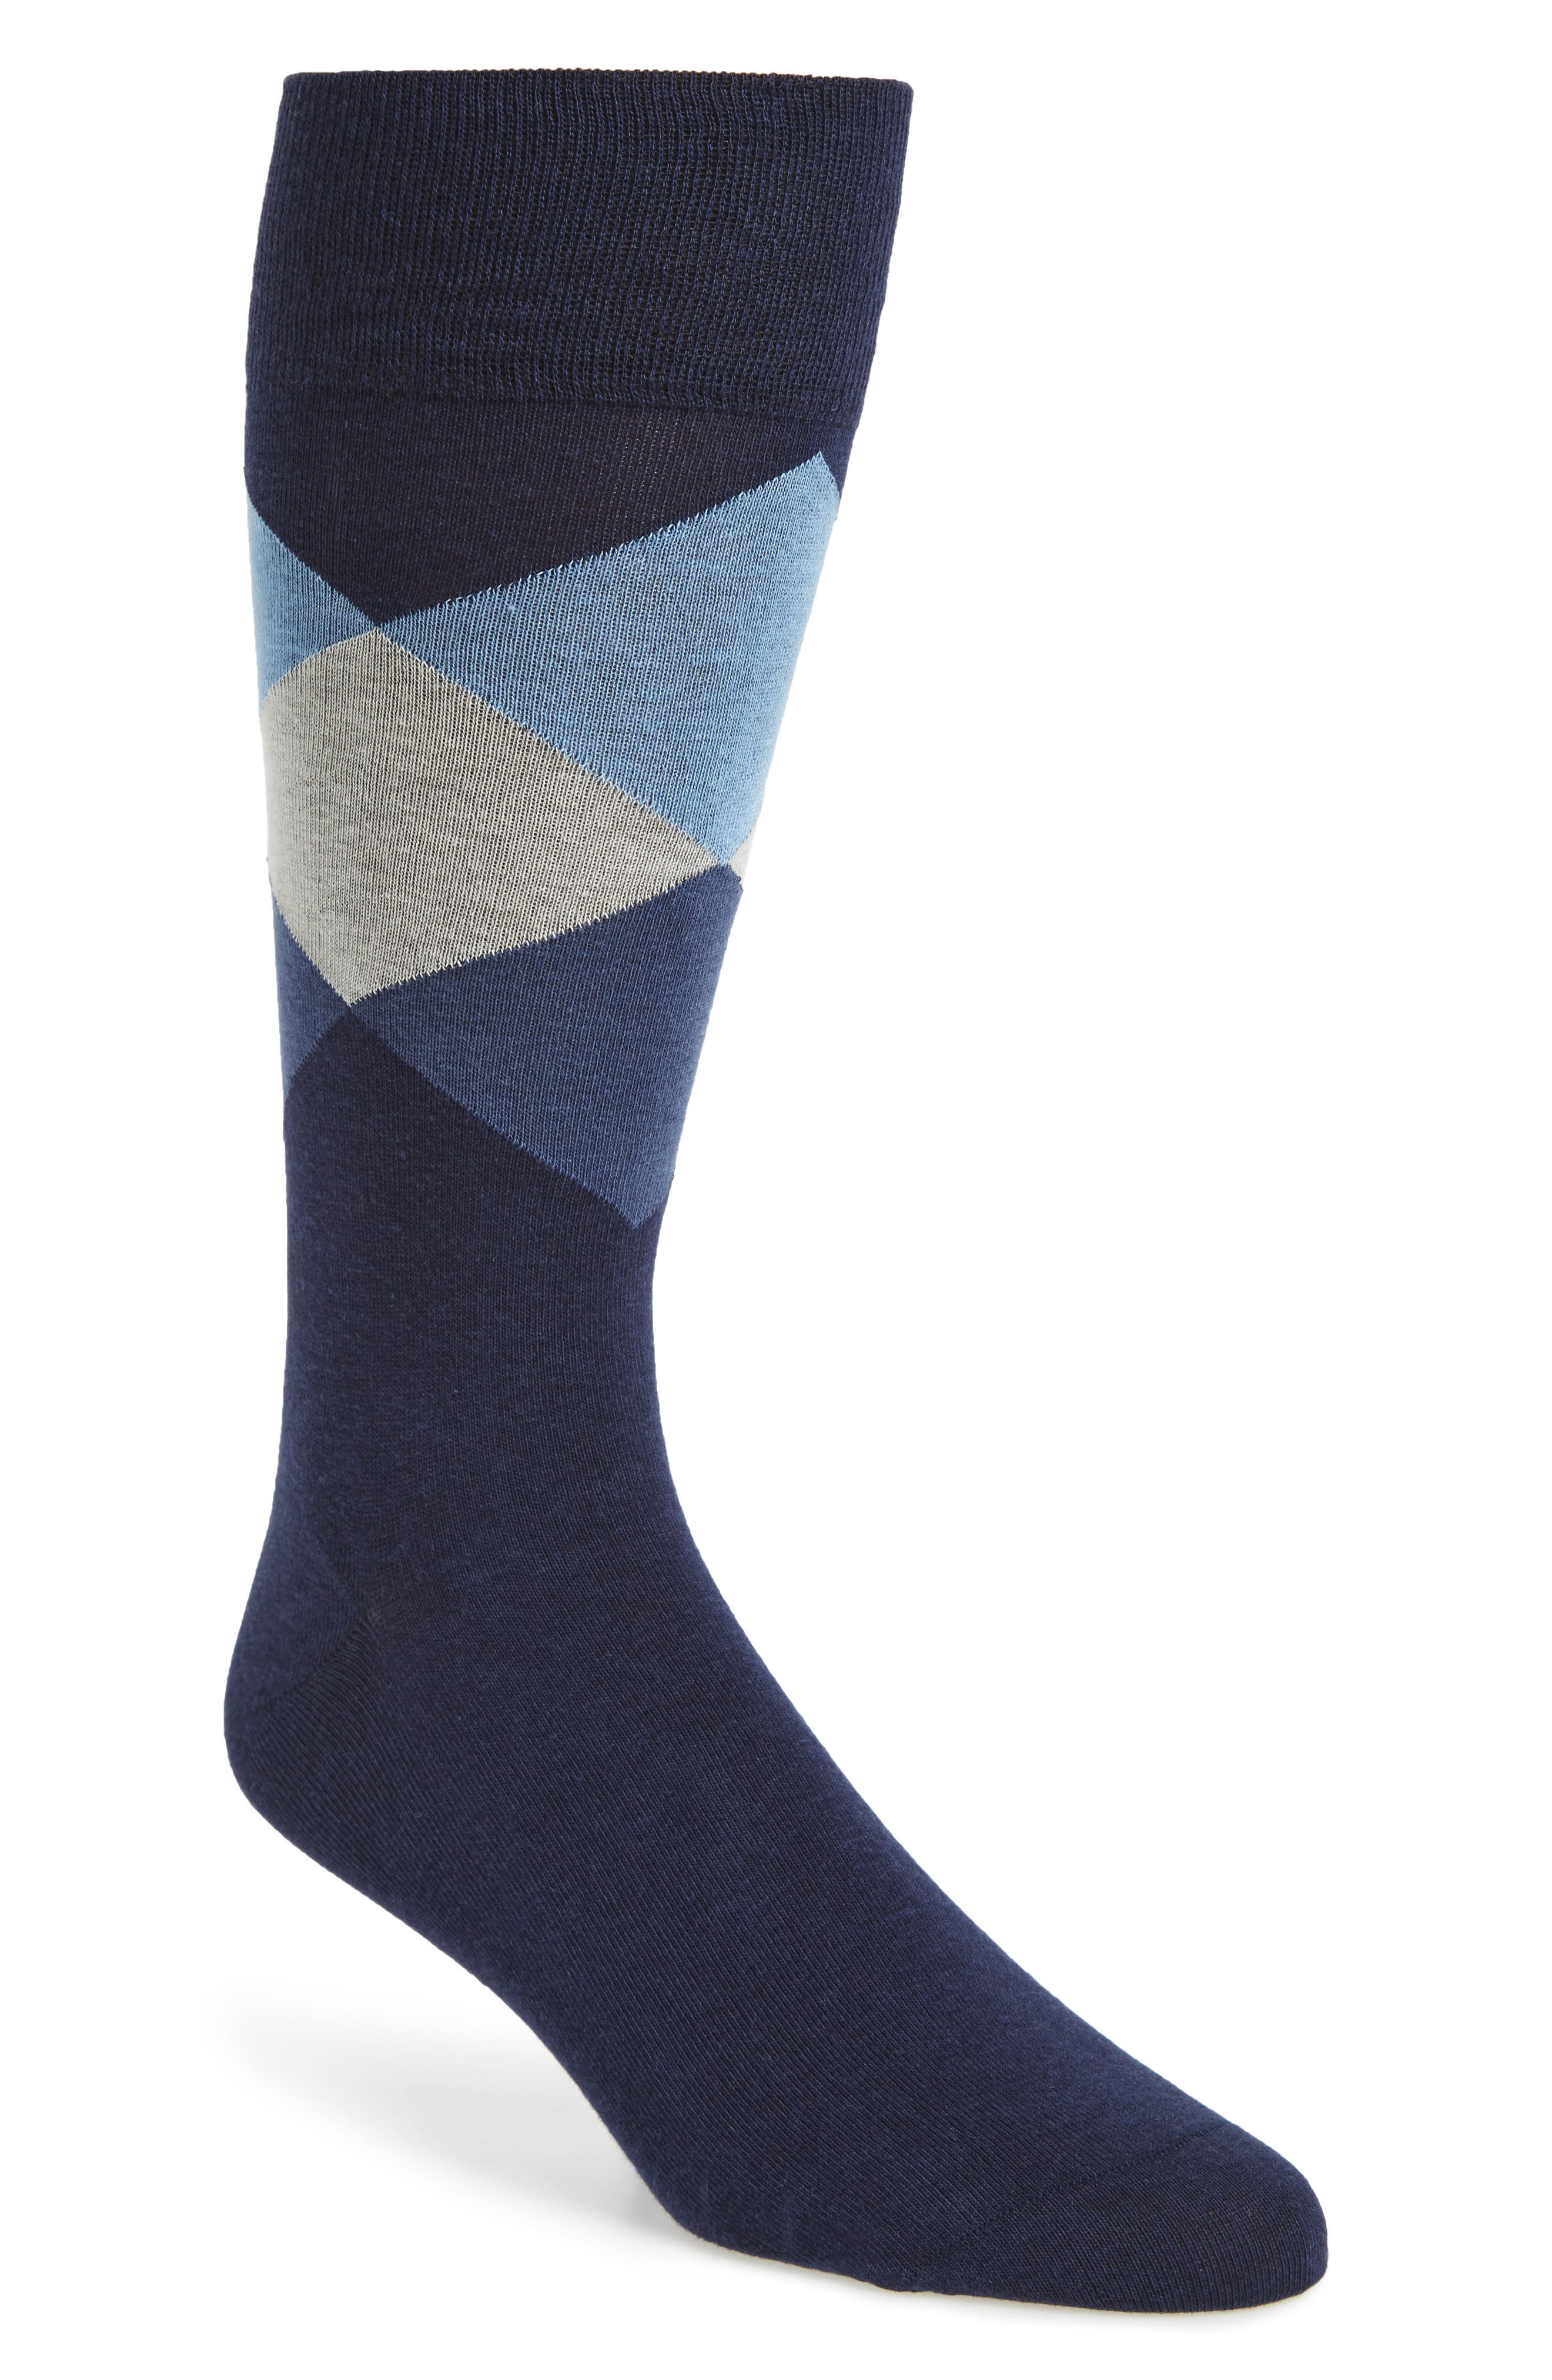 Alternate Image 1 Selected - Cole Haan Large Diamond Crew Socks (3 for $30)